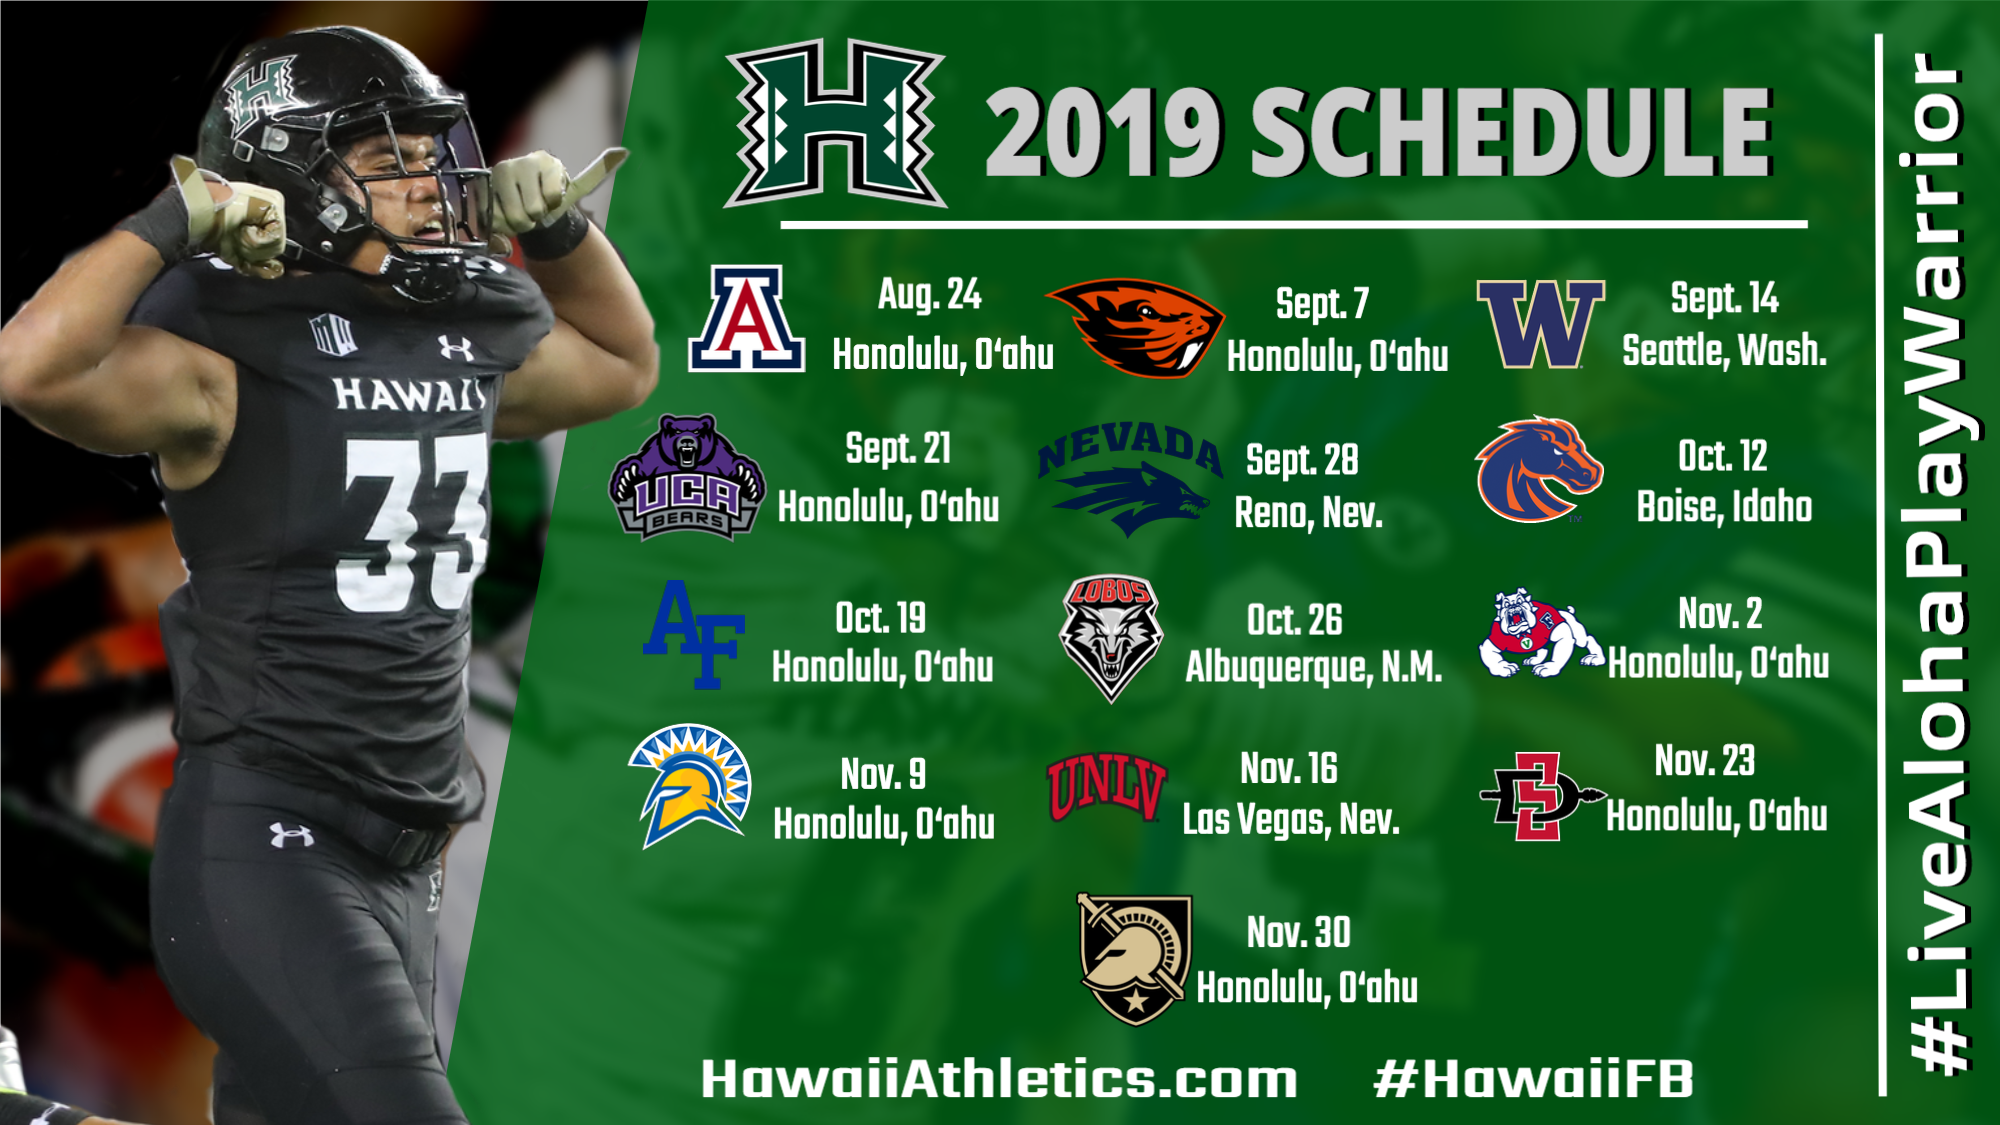 Oregon State Football Schedule 2020.2019 Football Schedule Announced University Of Hawai I At